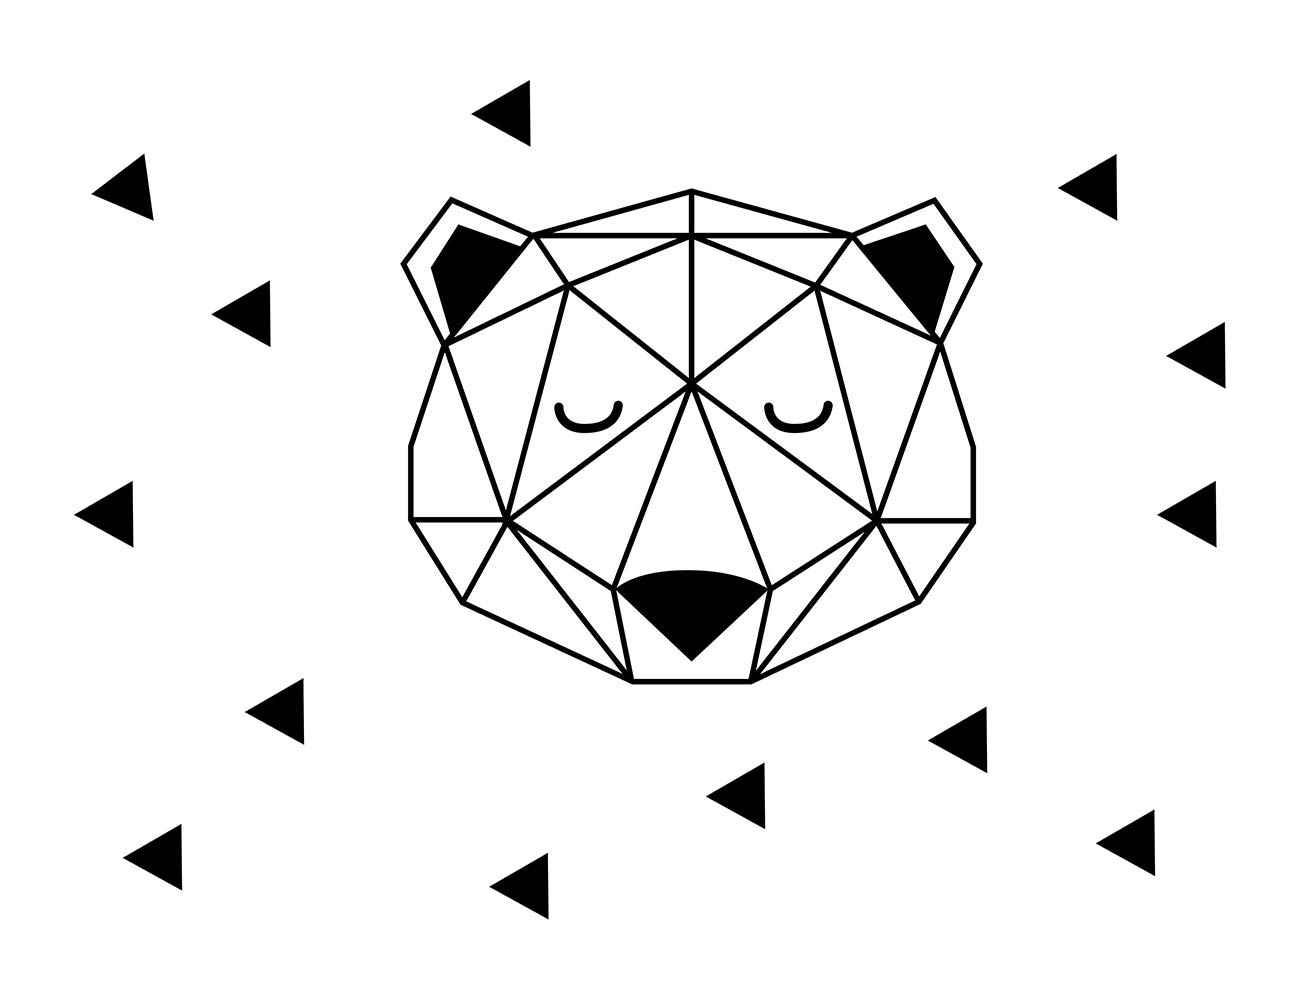 JUEKUI Woodland Bear Head with Triangle Wall Stickers Nordic Style Geometric Removable Vinyl Decals Home Decor WS31 (Black, M 42x50cm)